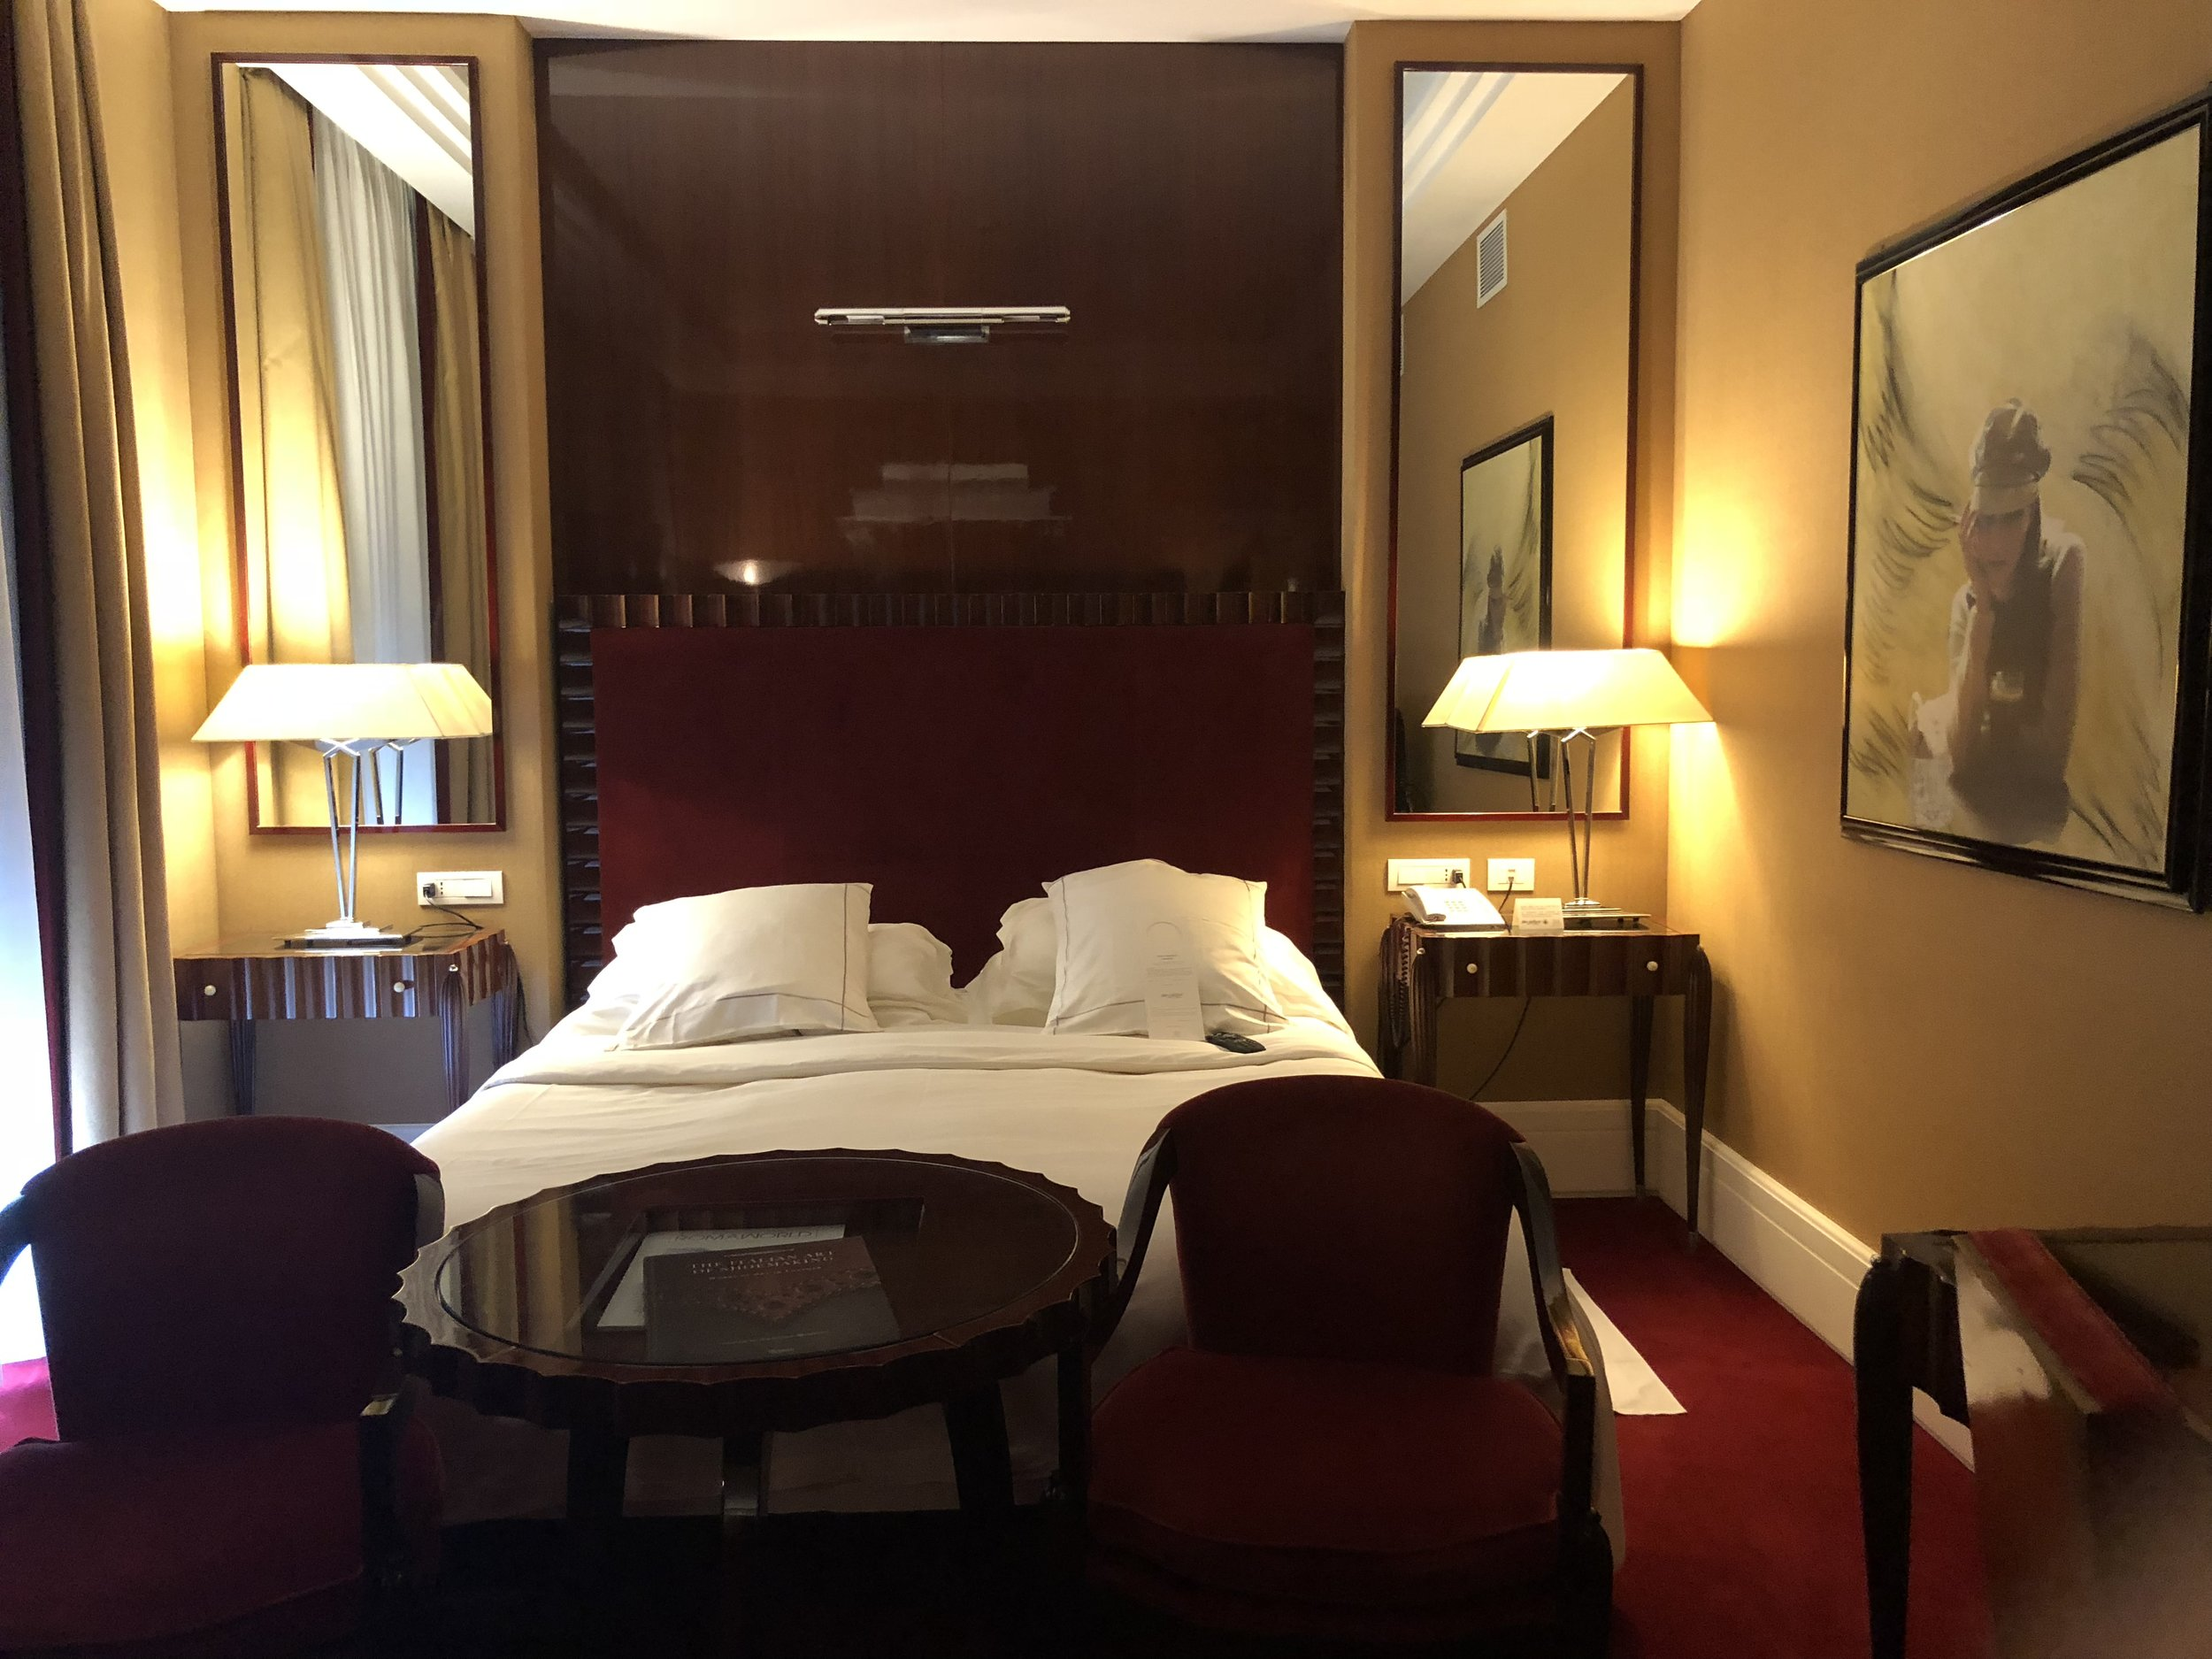 Spacious rooms and fine appointments